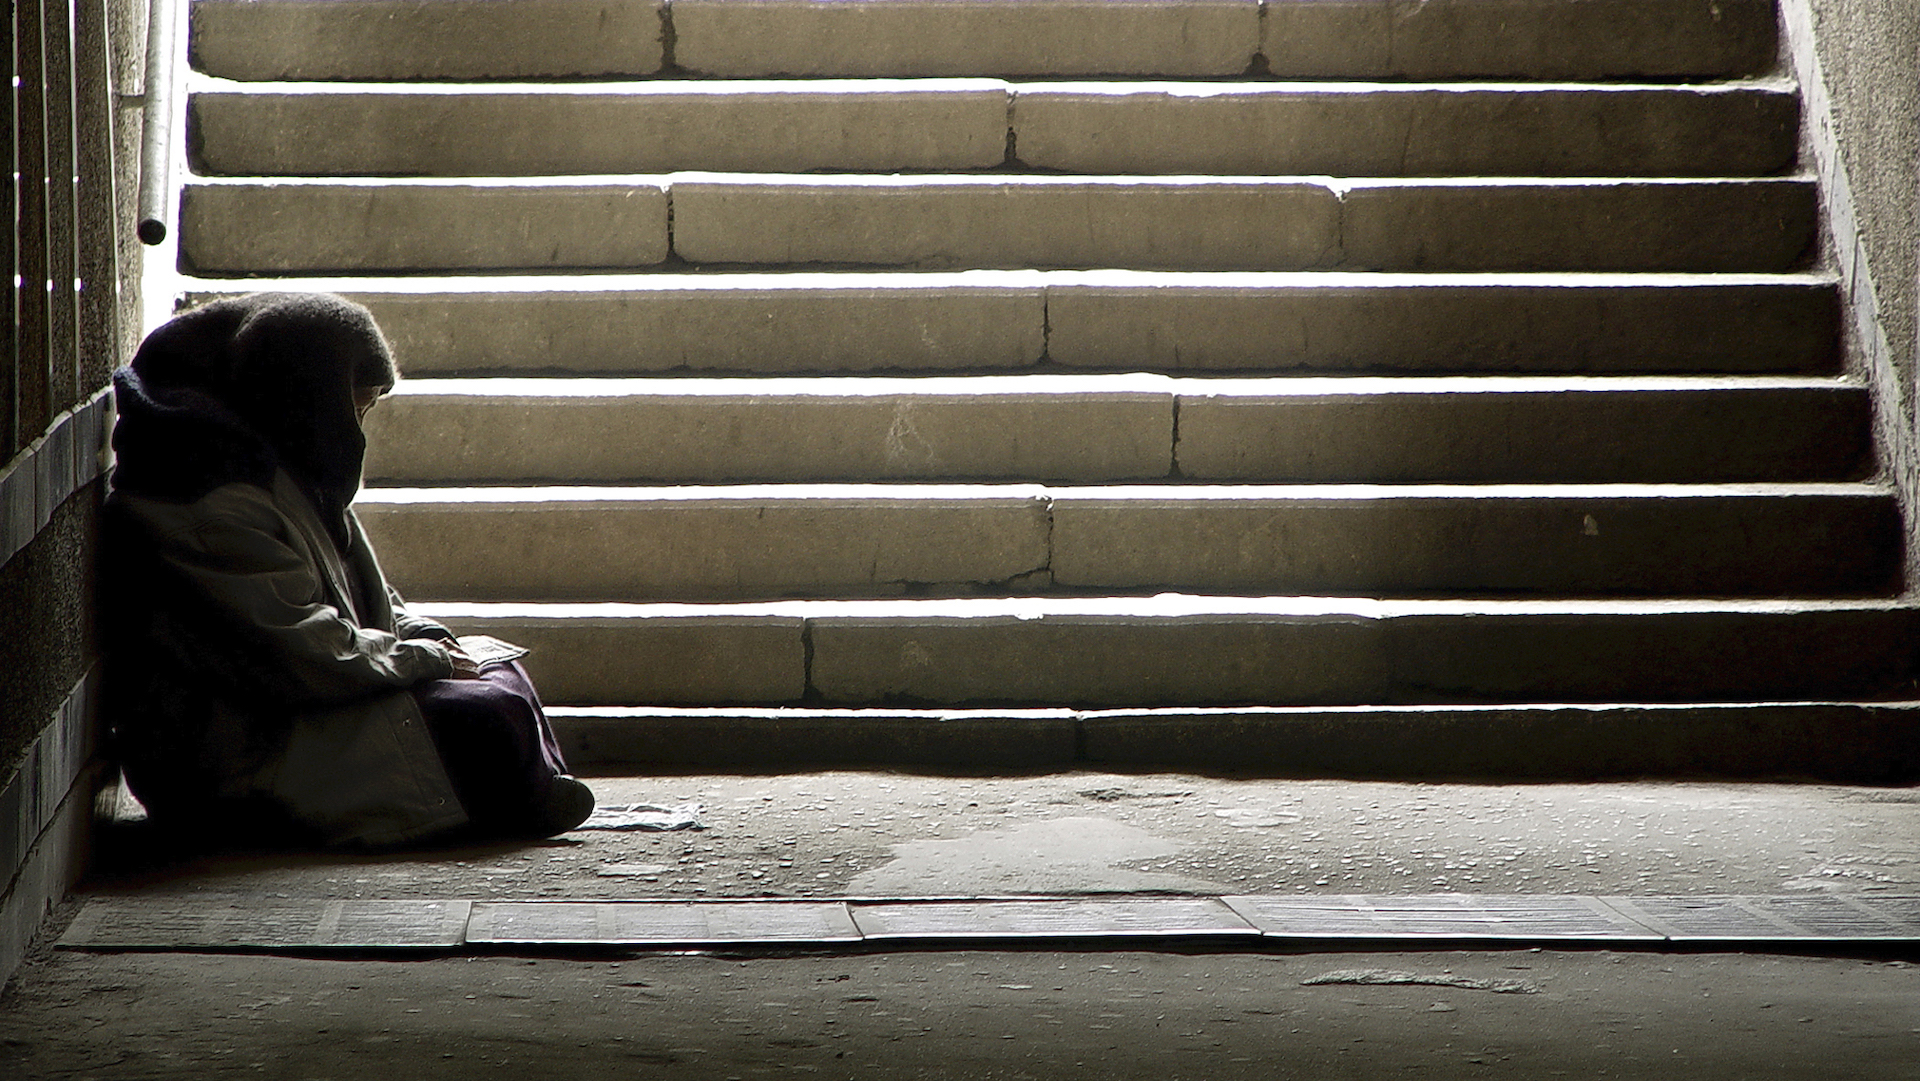 homeless-person-at-bottom-of-stairs